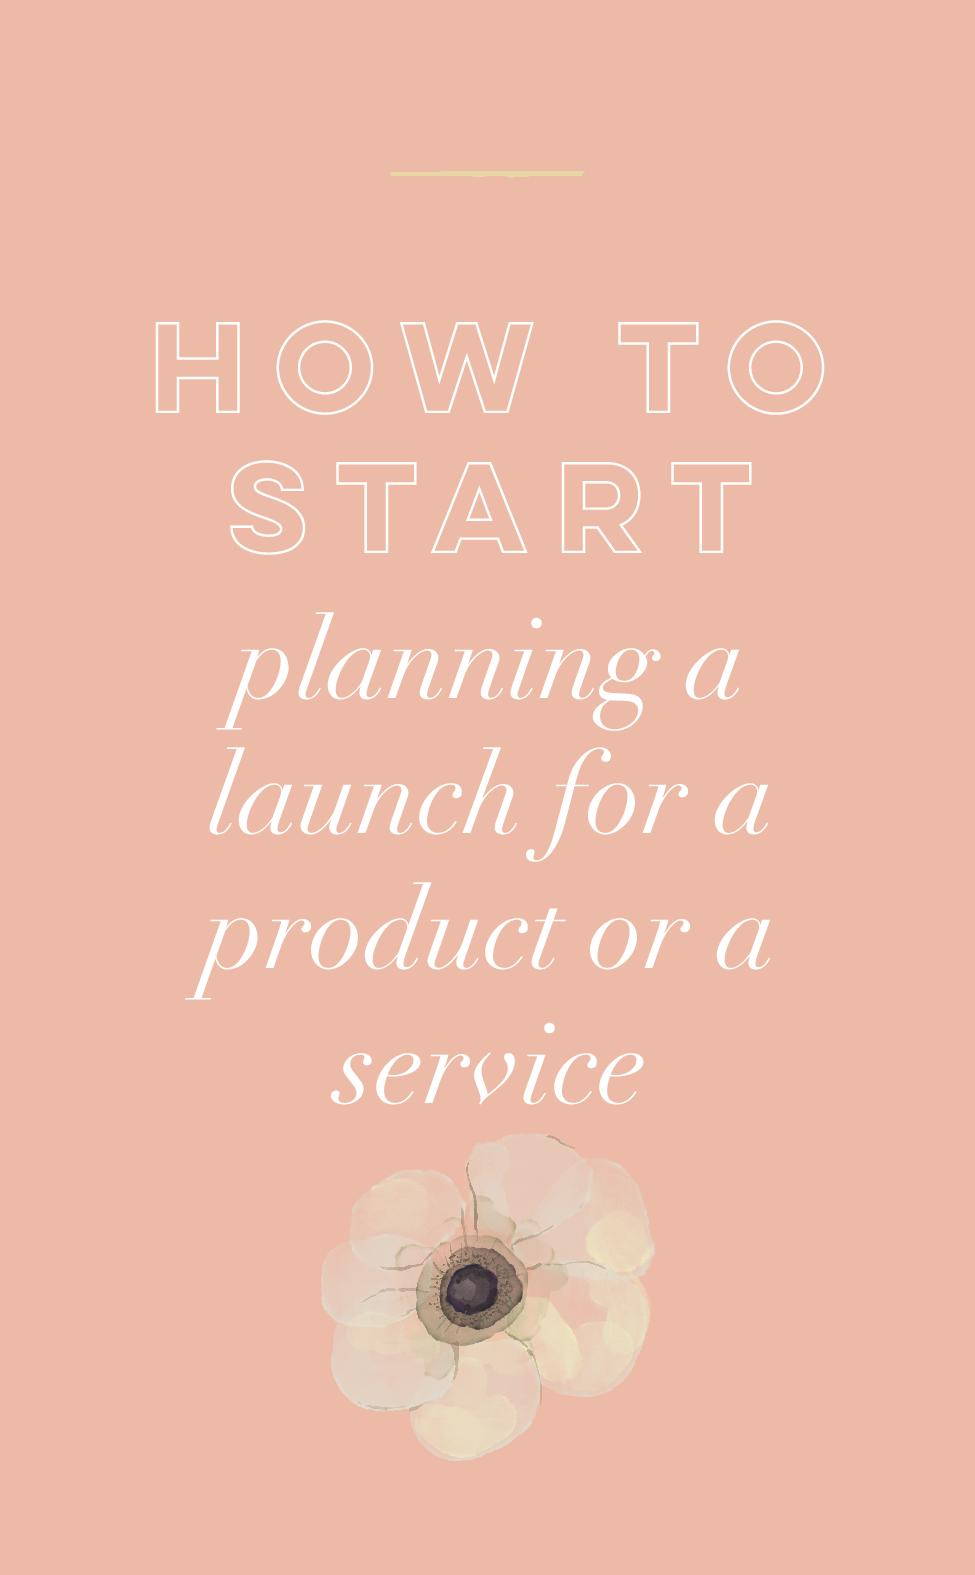 How to Start Planning a Launch for a Product or a Service.jpg